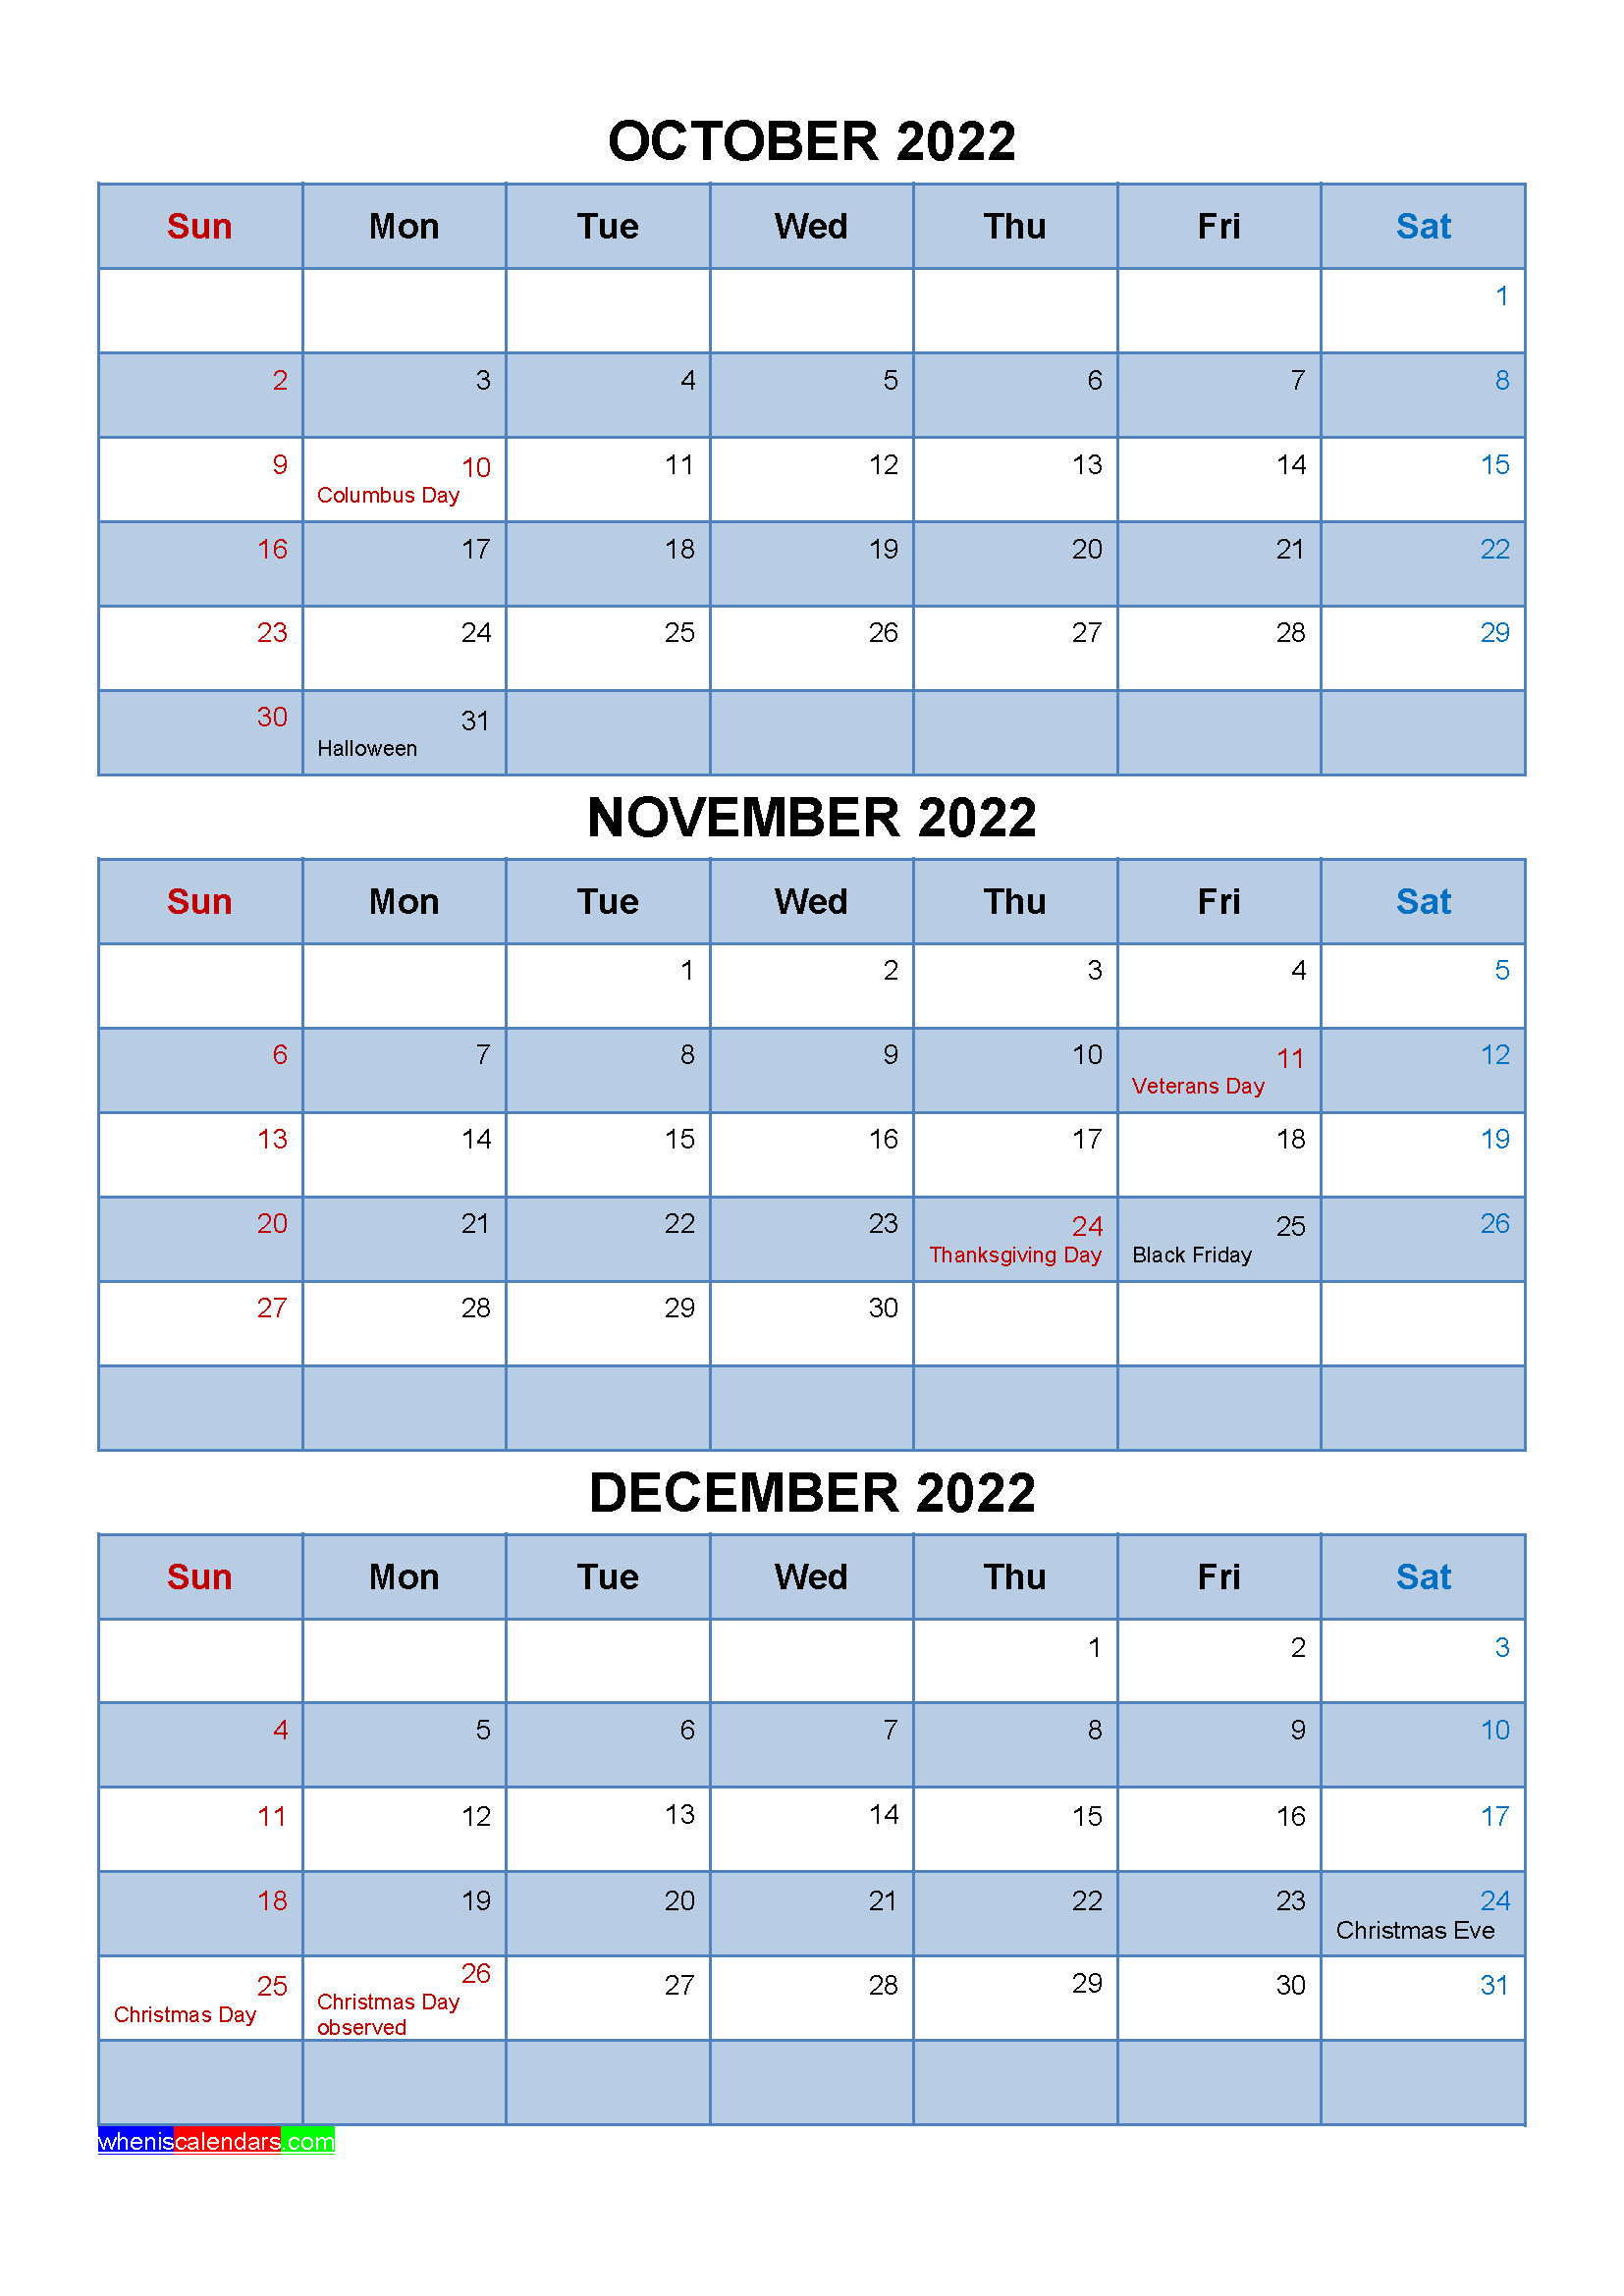 Free Calendar October November December 2022 with Holidays